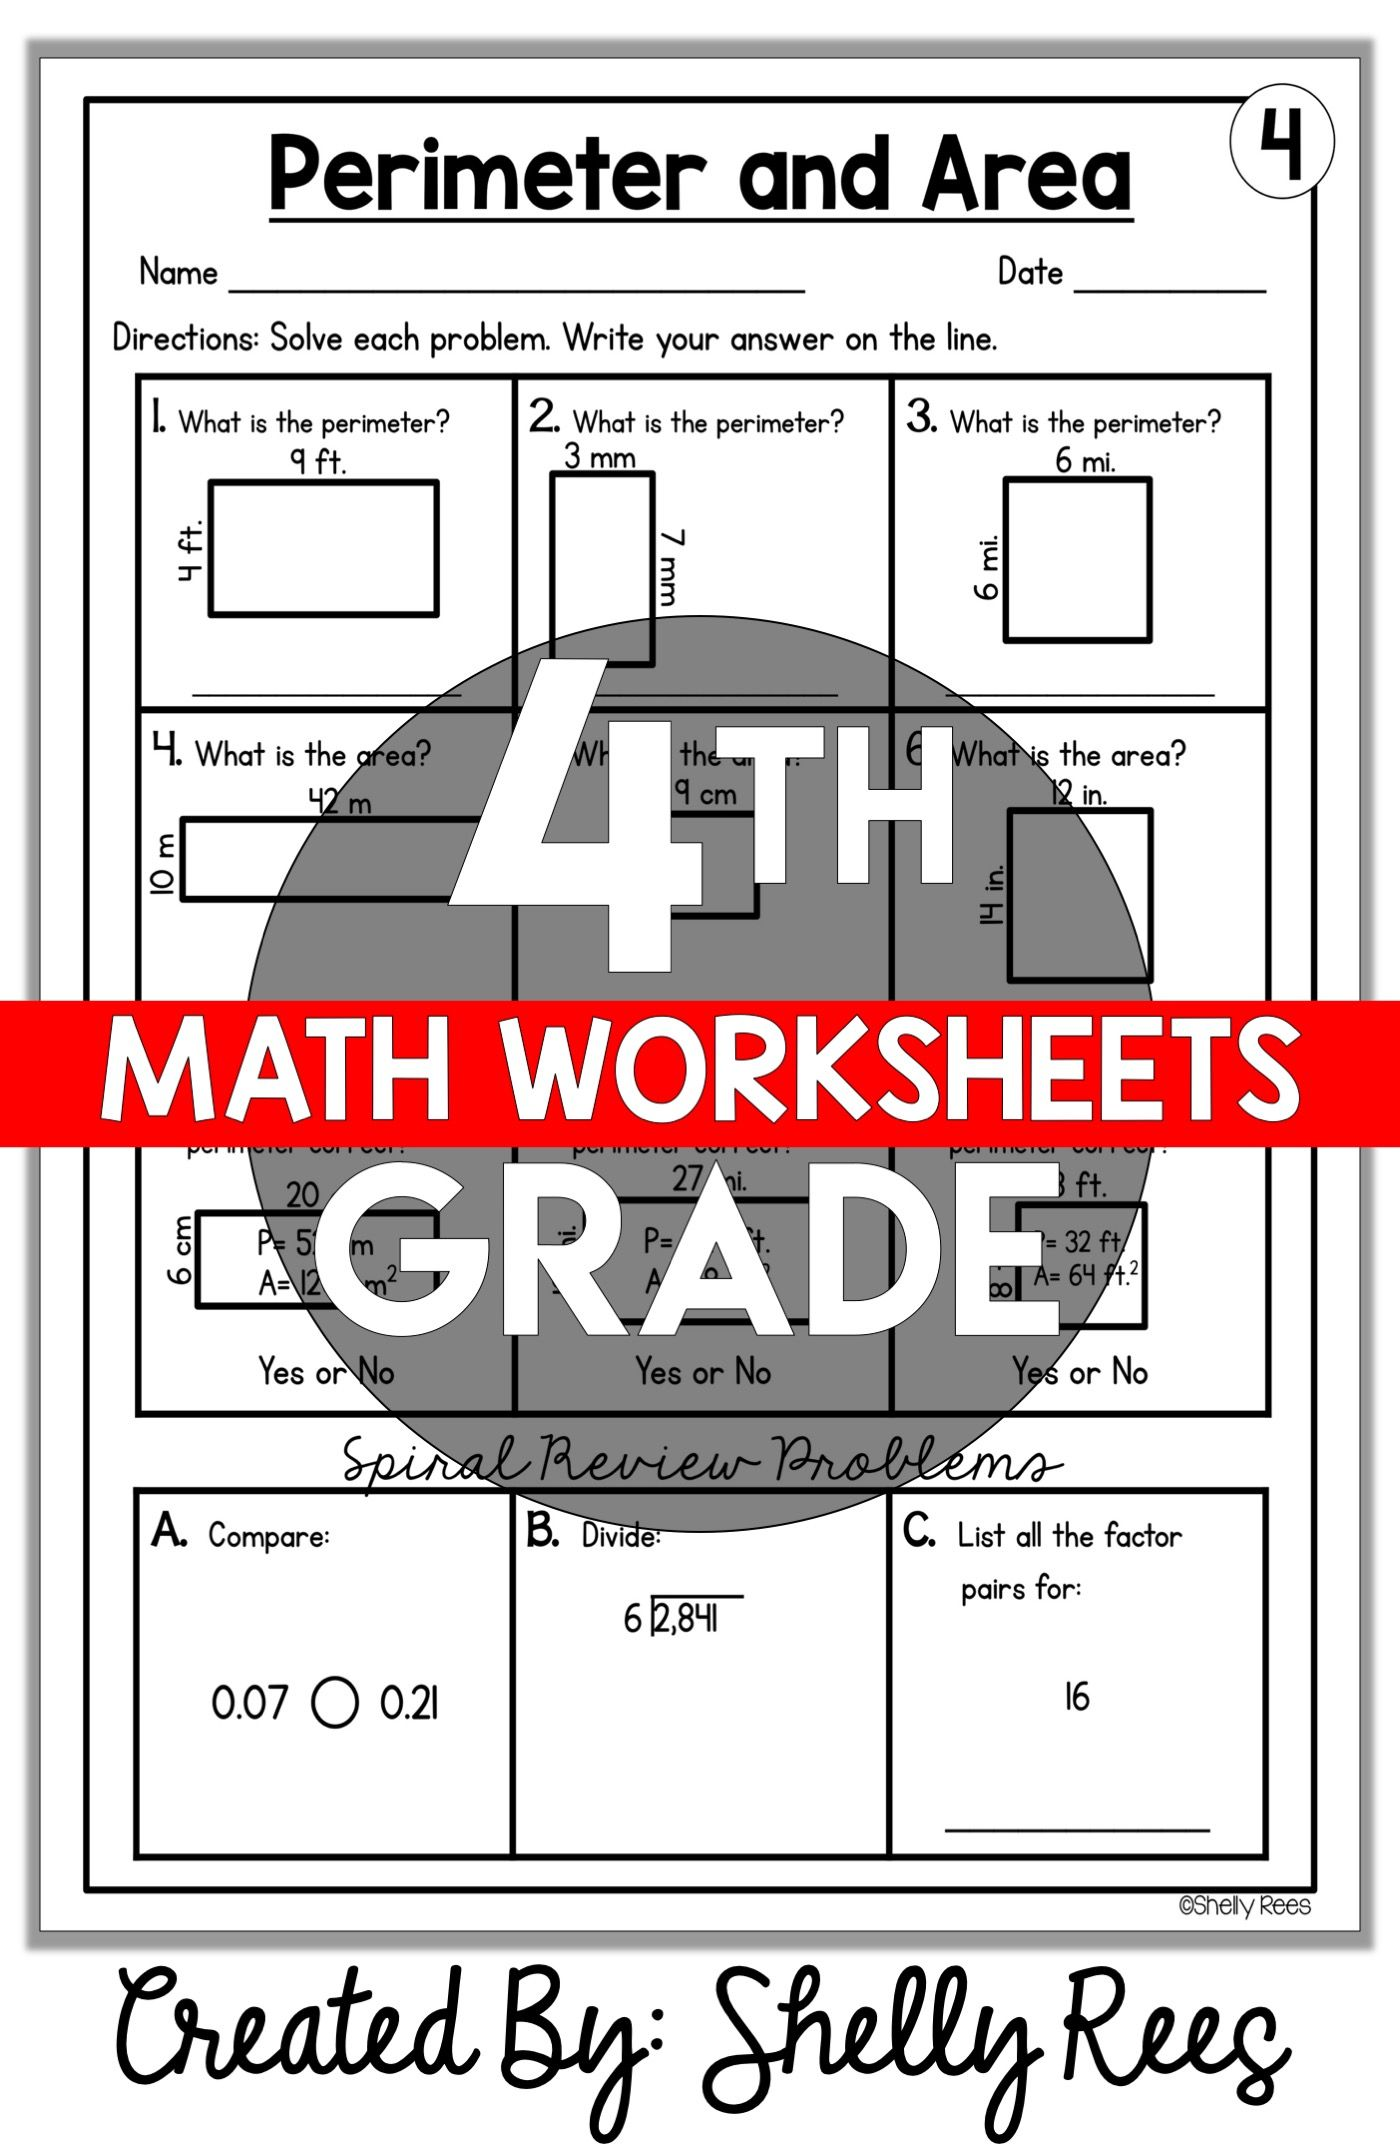 small resolution of 4th Grade Math Worksheets Free and Printable - Appletastic Learning   Math  worksheets